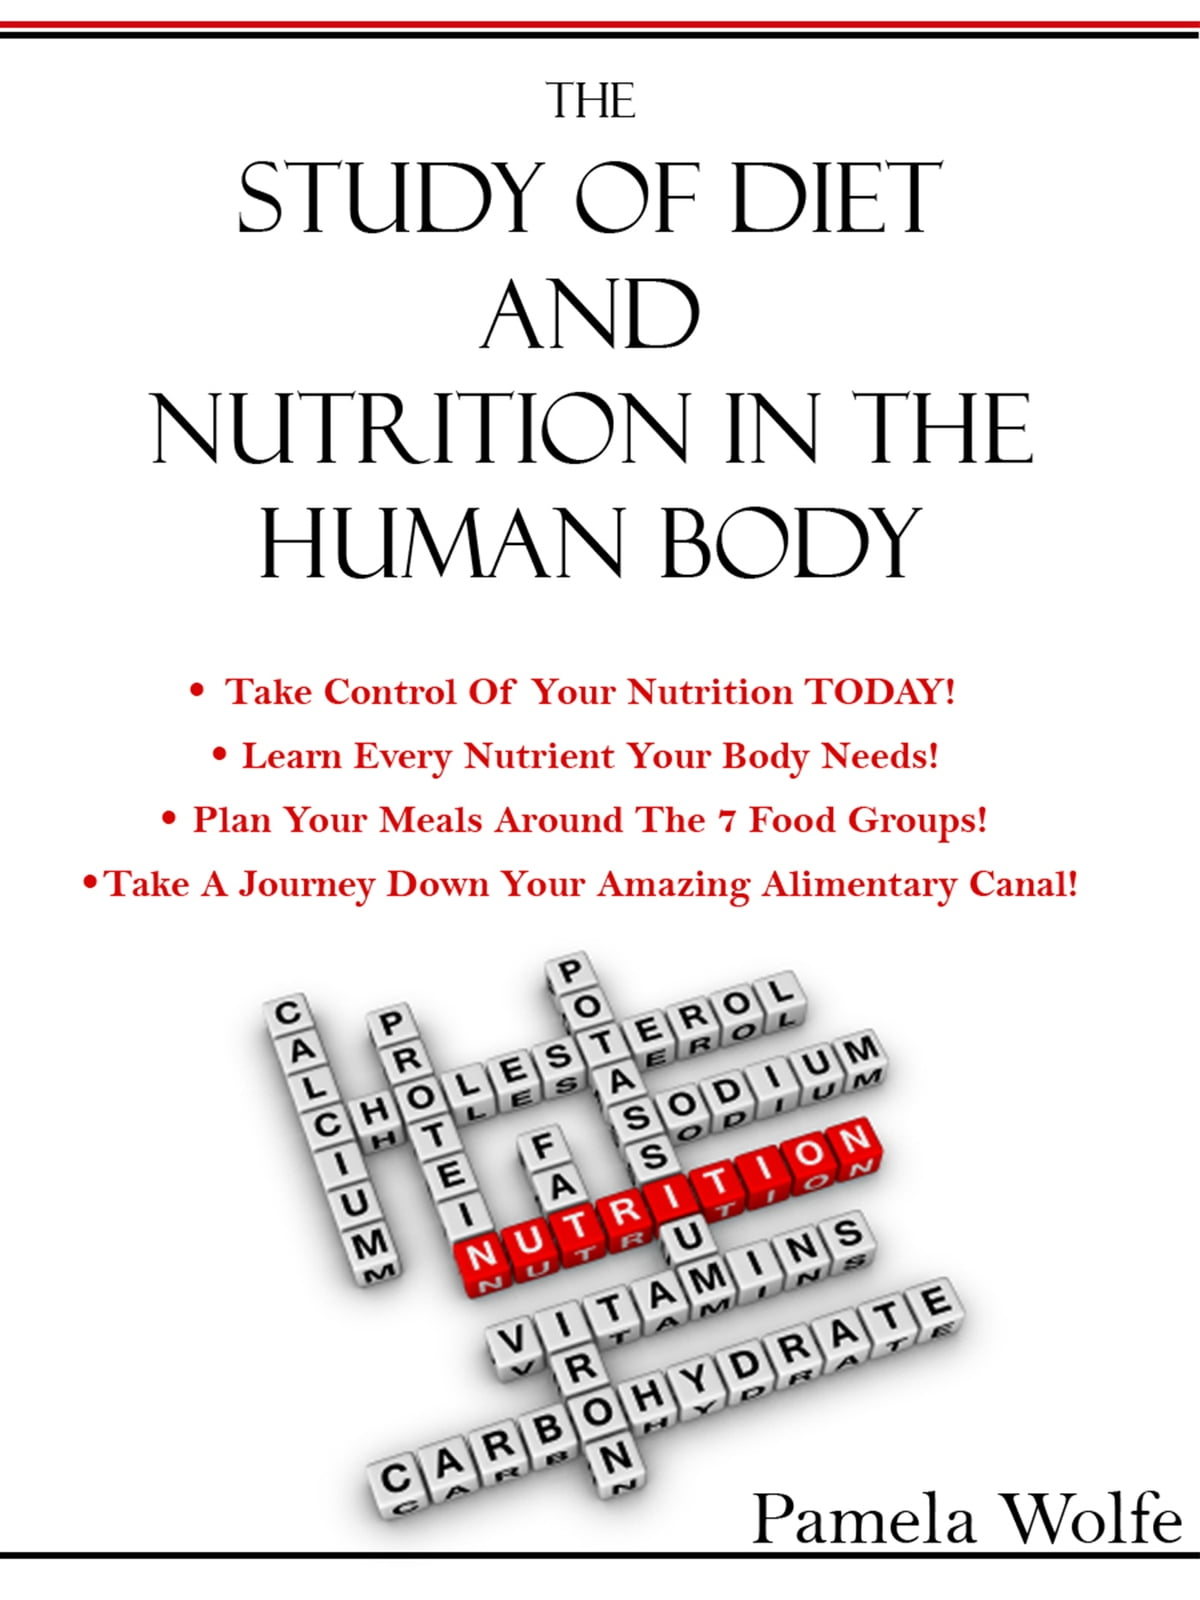 The Study Of Diet And Nutrition In The Human Body Ebook By Pamela